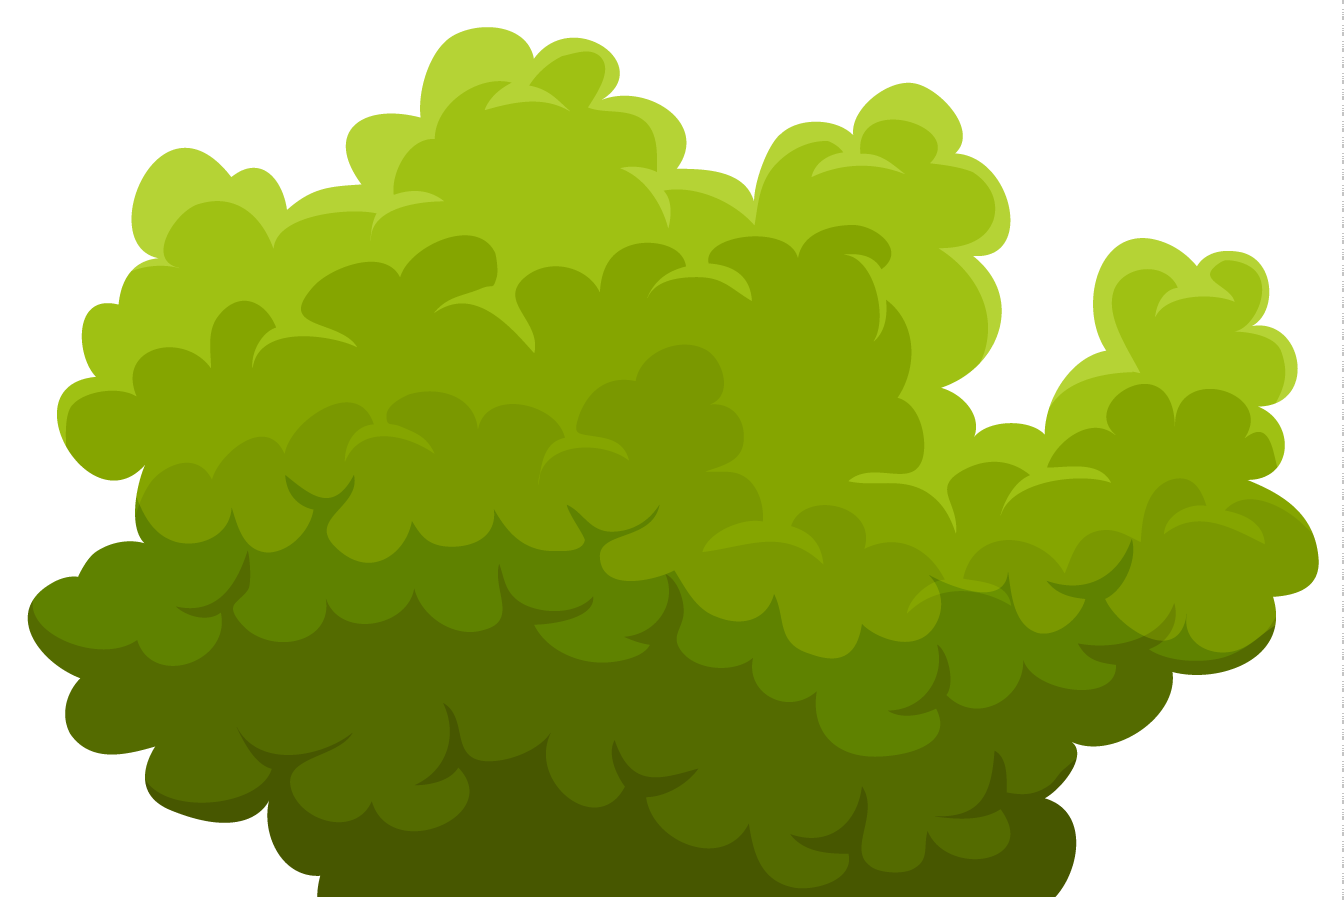 Bushes clipart. Station